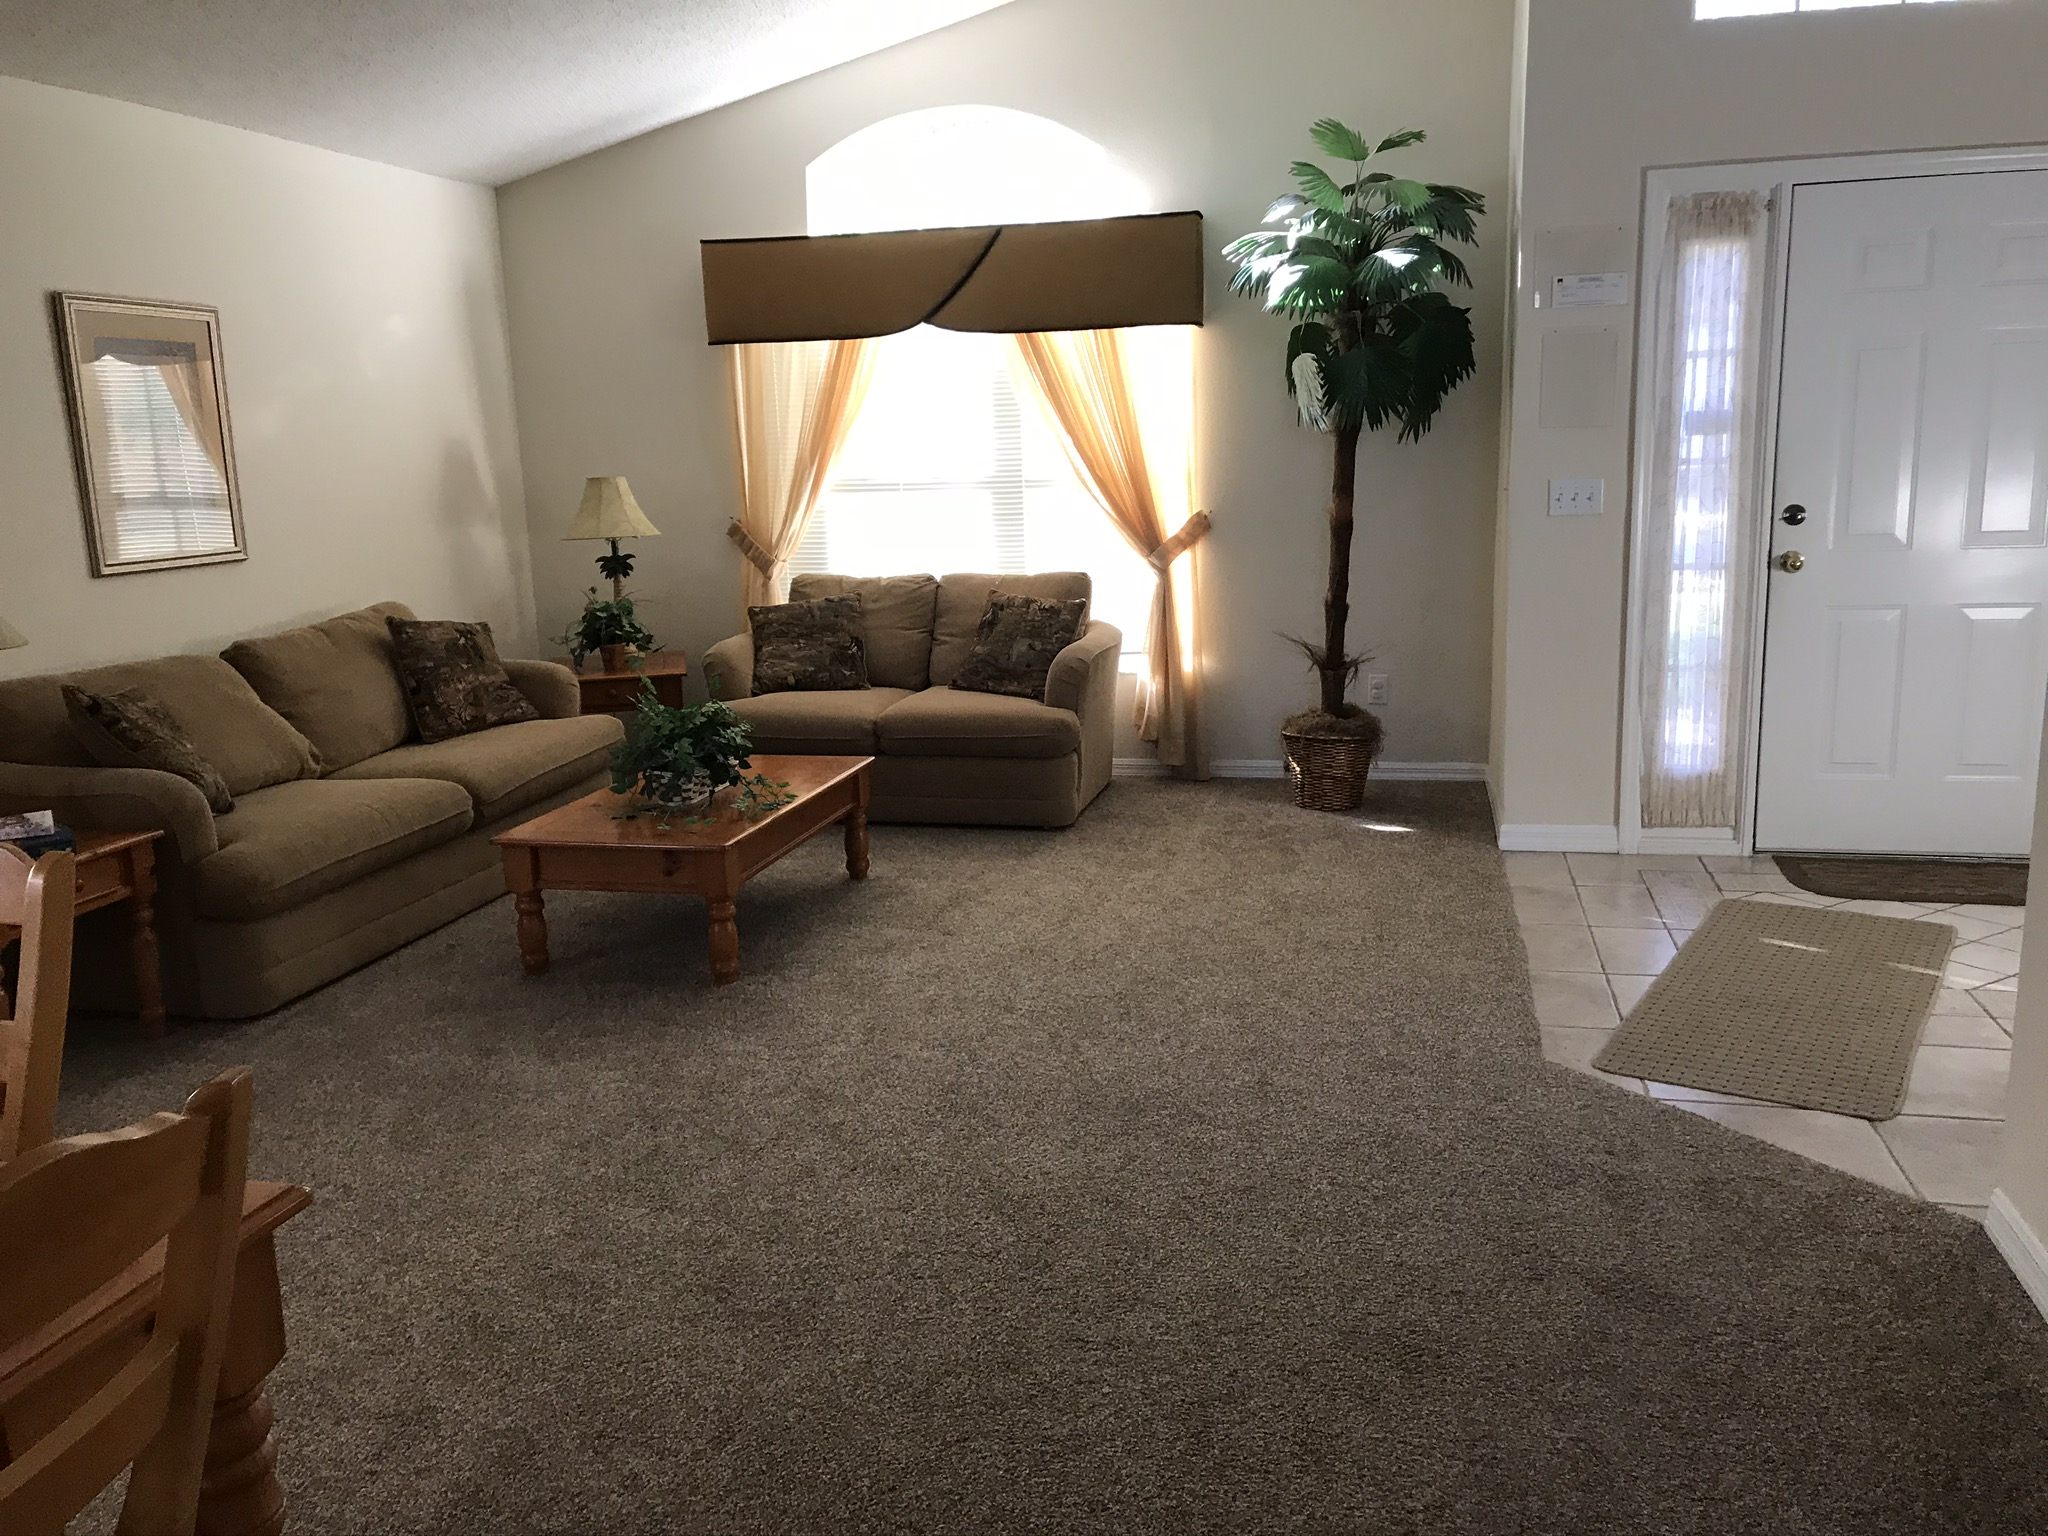 Pool home 2 miles from Disney -148371